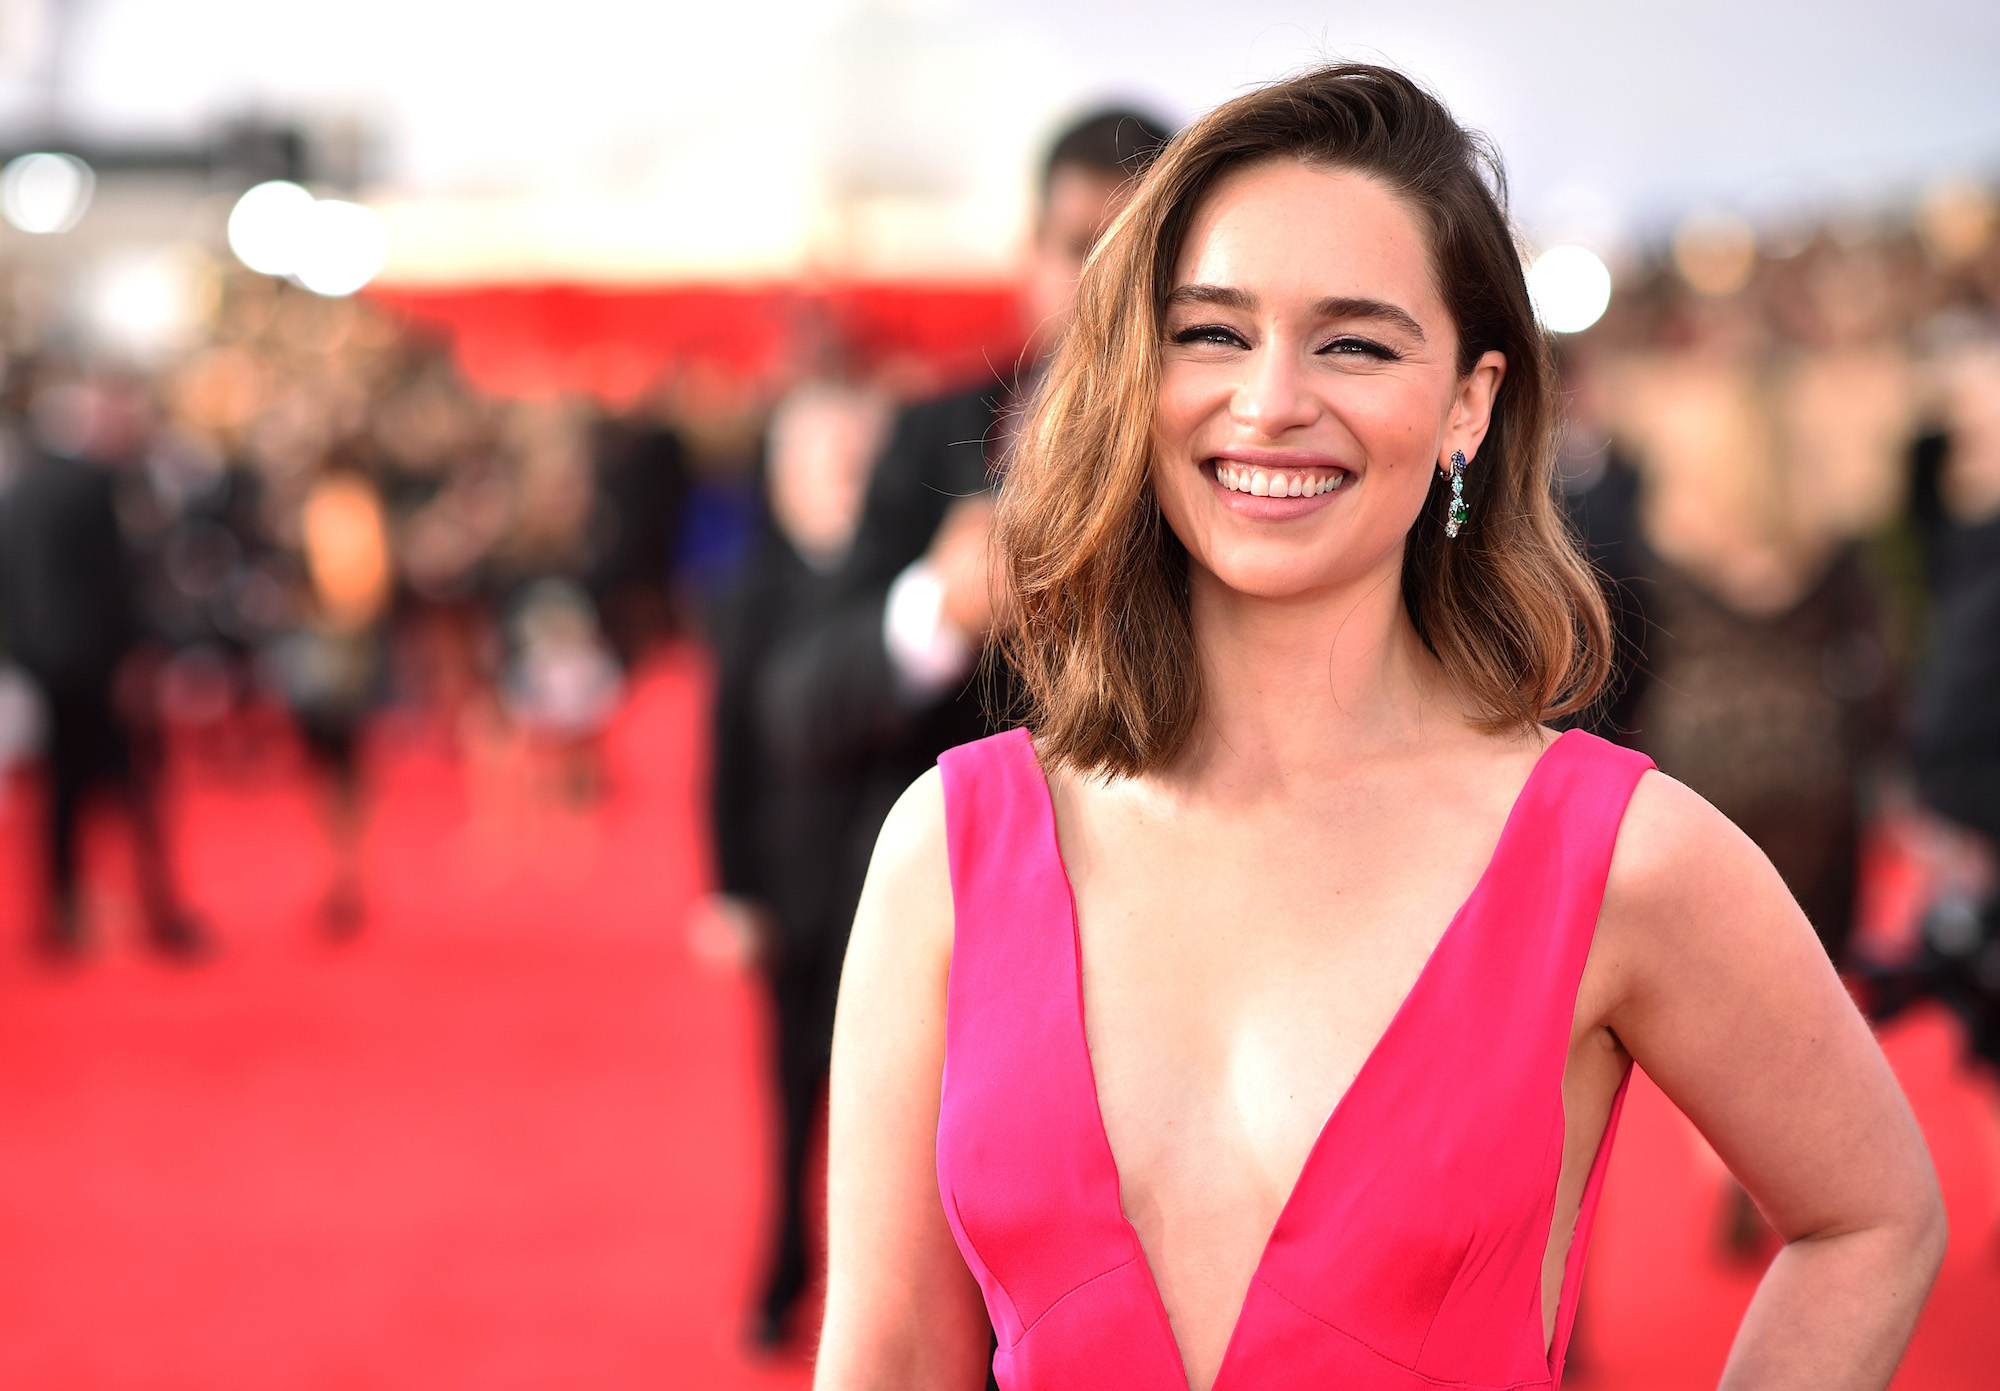 Emilia Clarke attends The 22nd Annual Screen Actors Guild Awards Jan. 30, 2016